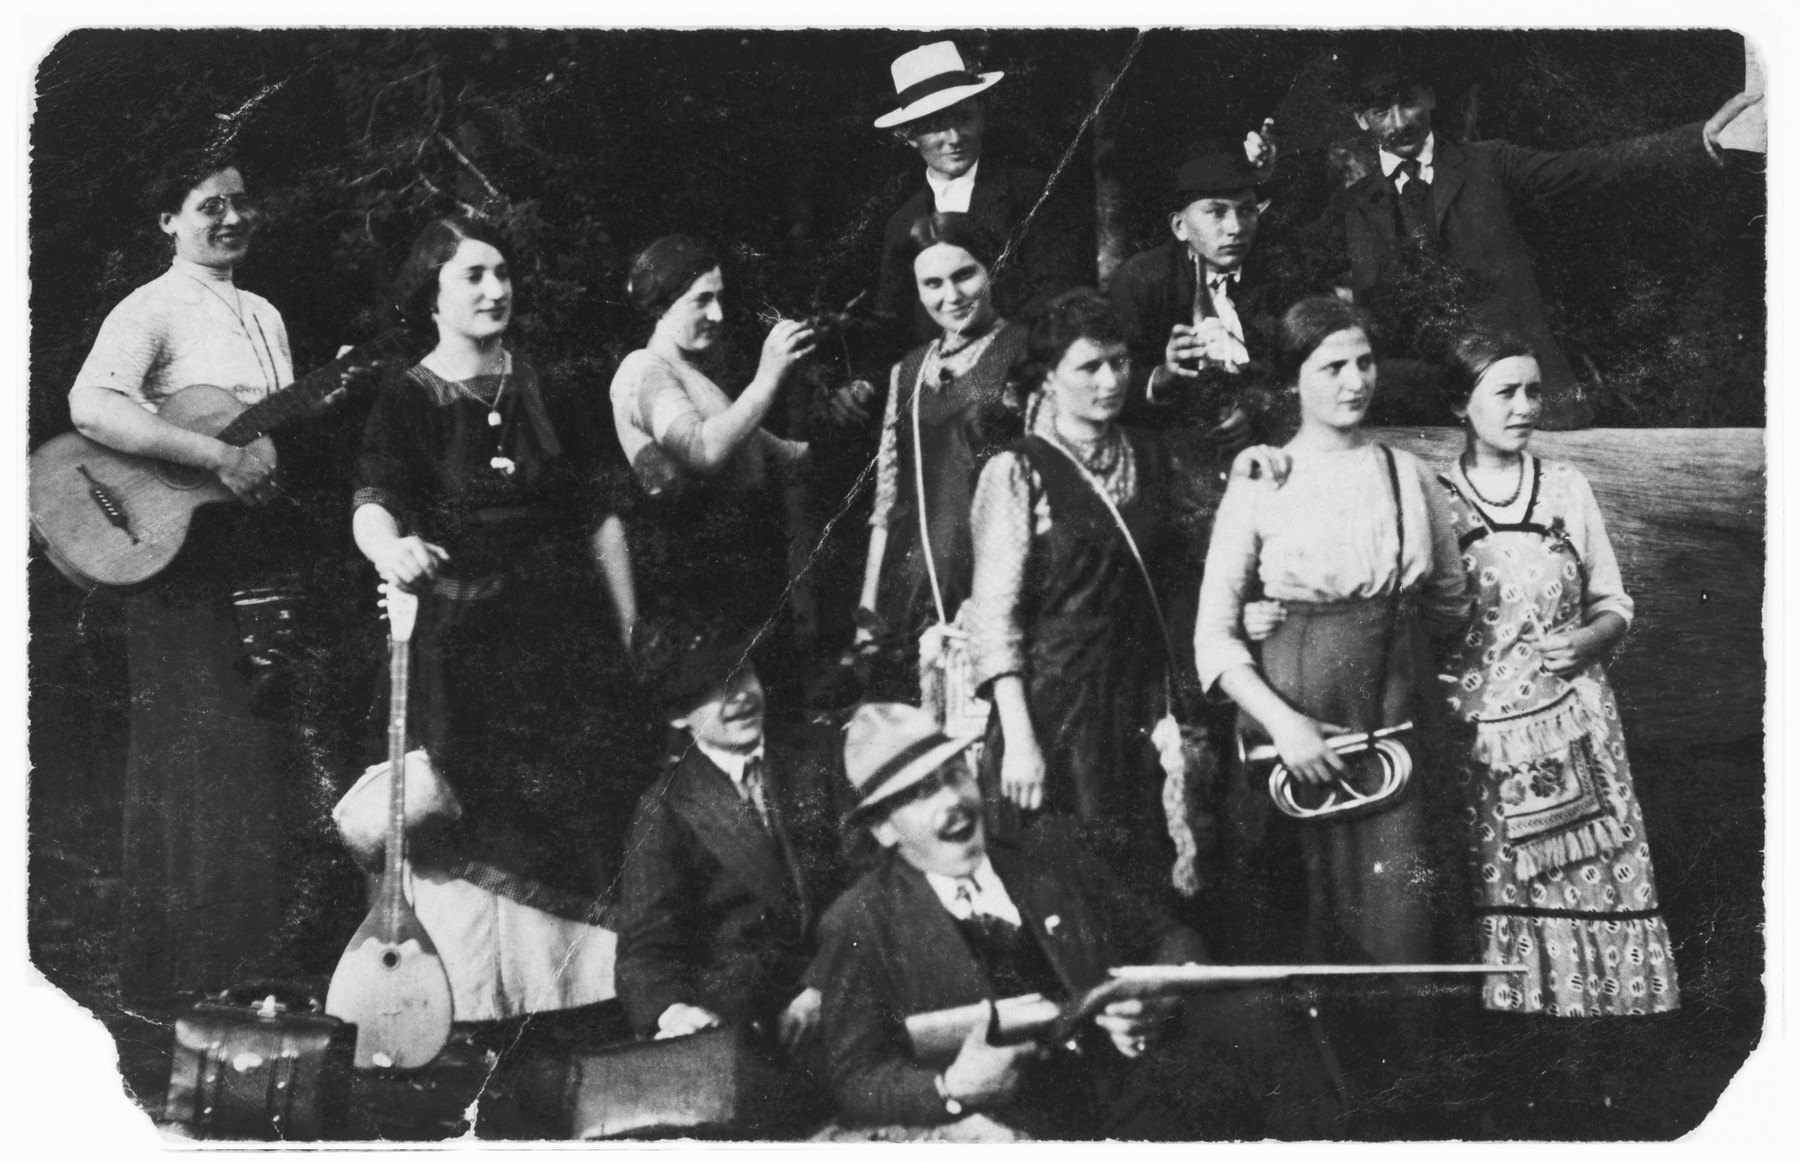 A group of Jewish young men and women from Croatia pose for a group photograph with their musical instruments.  Among those pictured are three sisters: Gizela Benedik (second from the left), Irena Benedik (third from the left) and Victoria Benedik (second from the right).